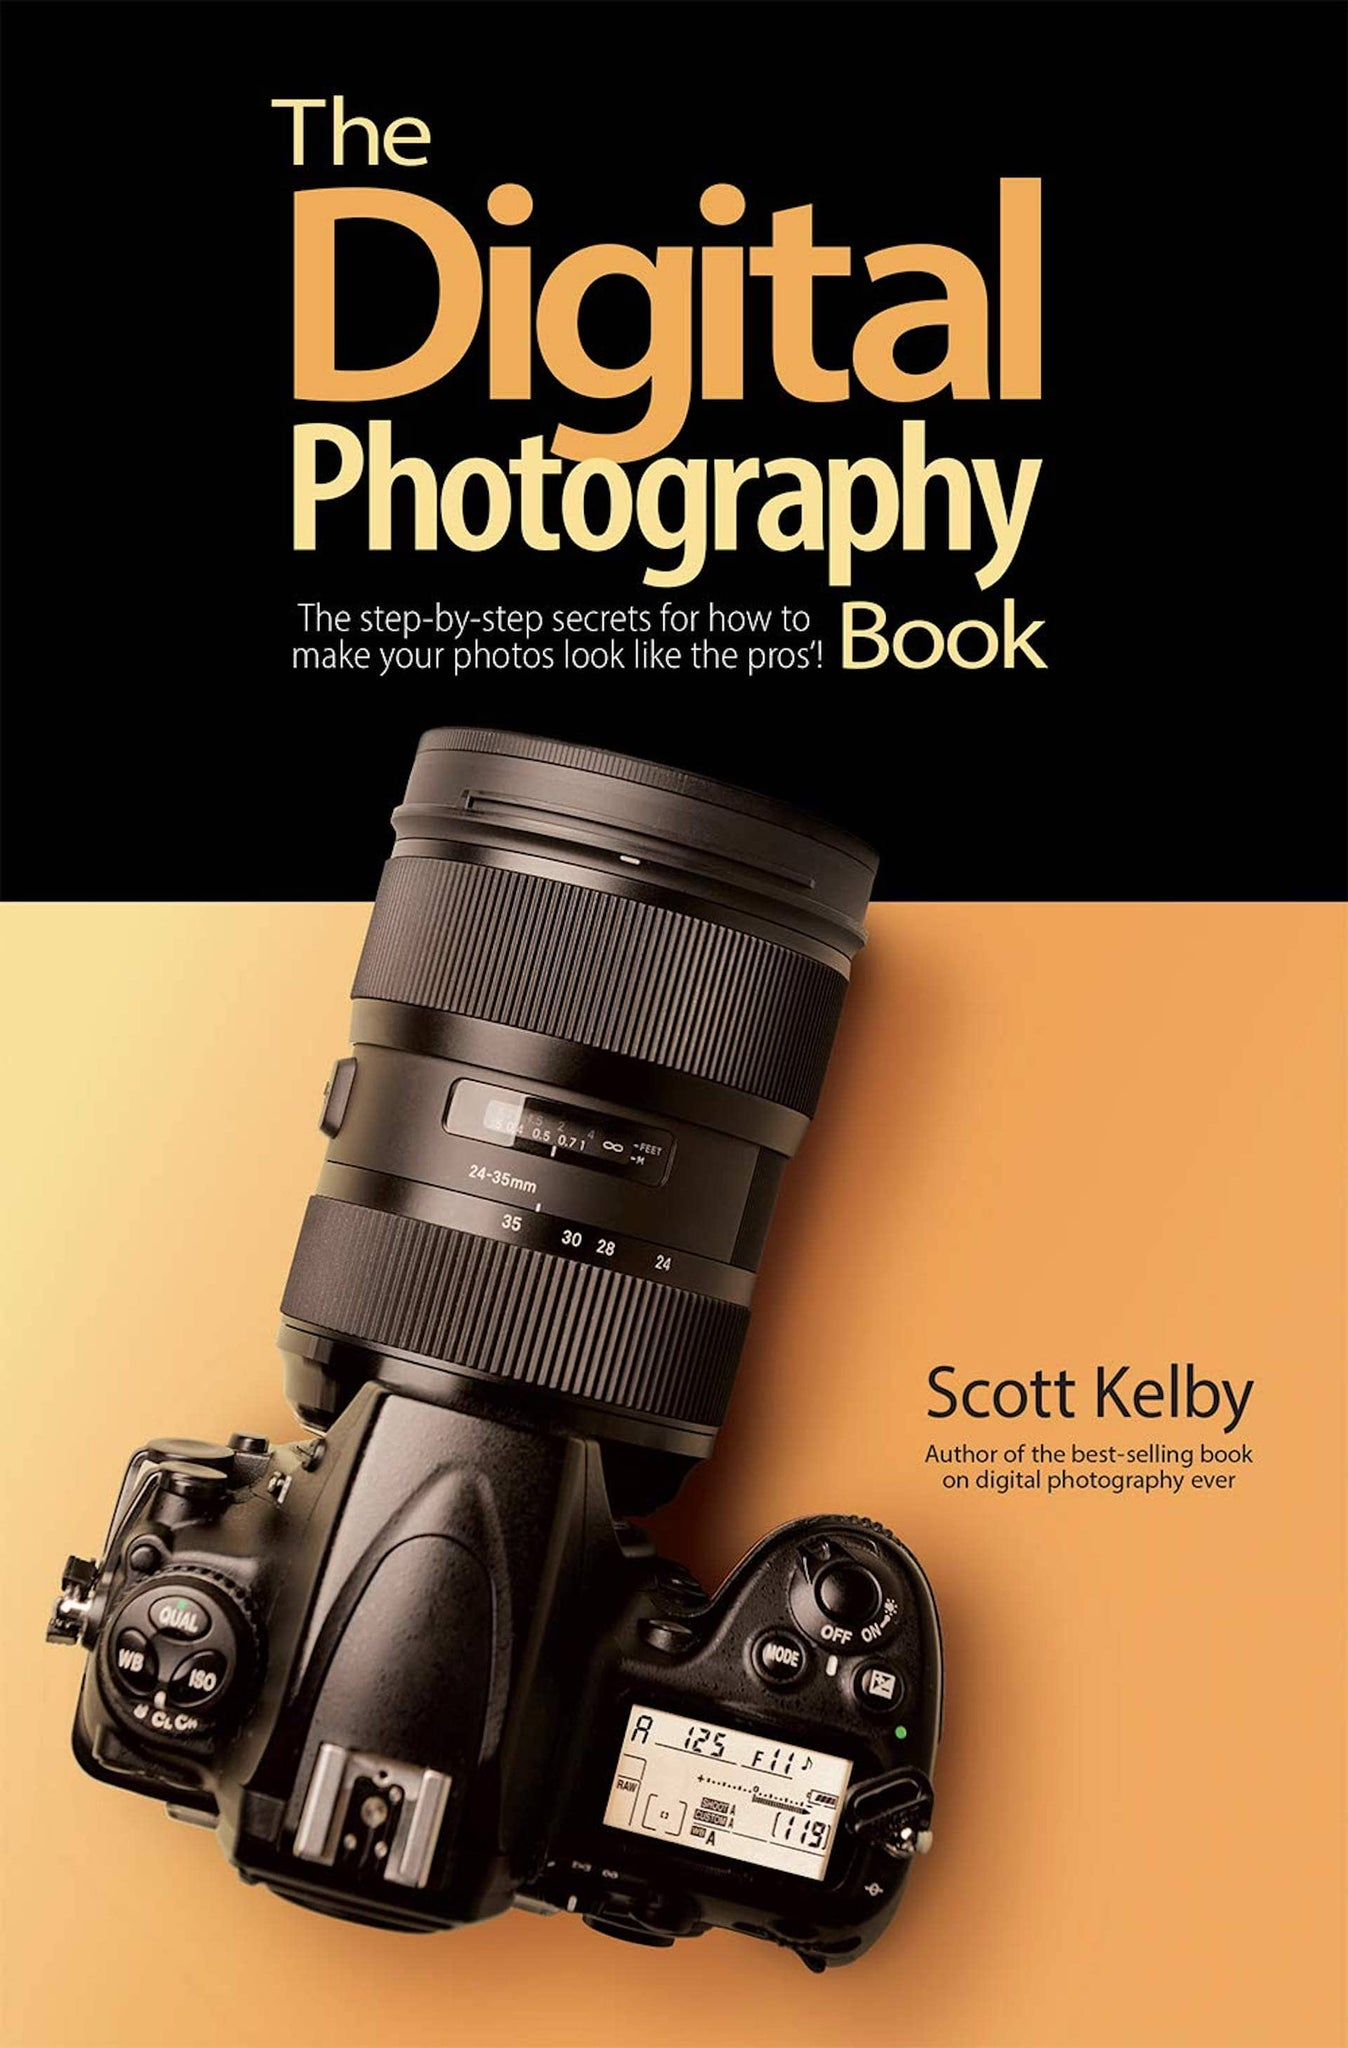 Best Photo Gifts for Photographers - Ideas Photographer Lovers - Digital Photography Book